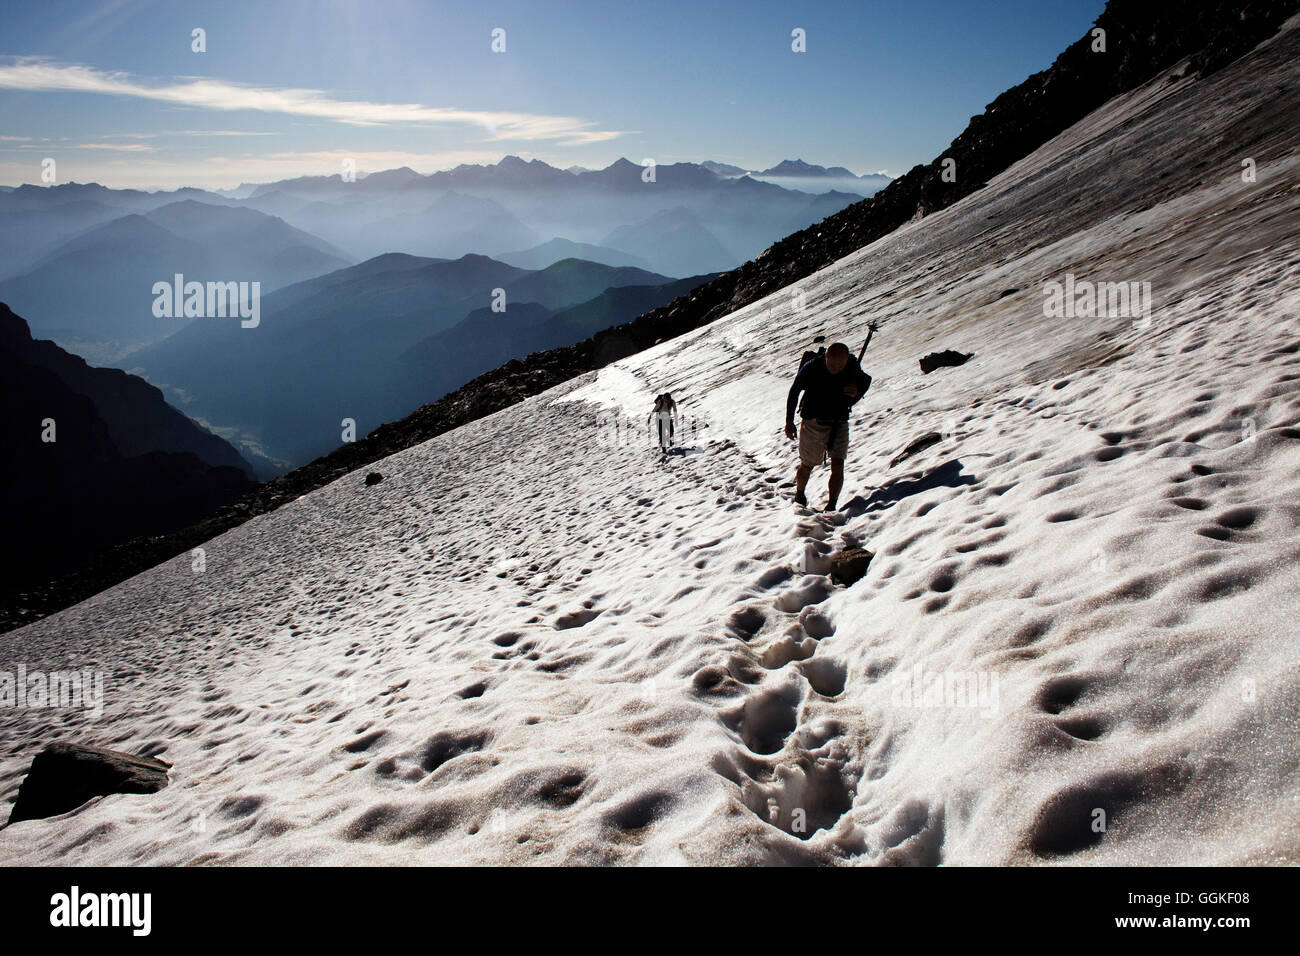 Two people hiking on a snowfield, ascend to Habicht (3277 m), Stubai Alps, Tyrol, Austria - Stock Image